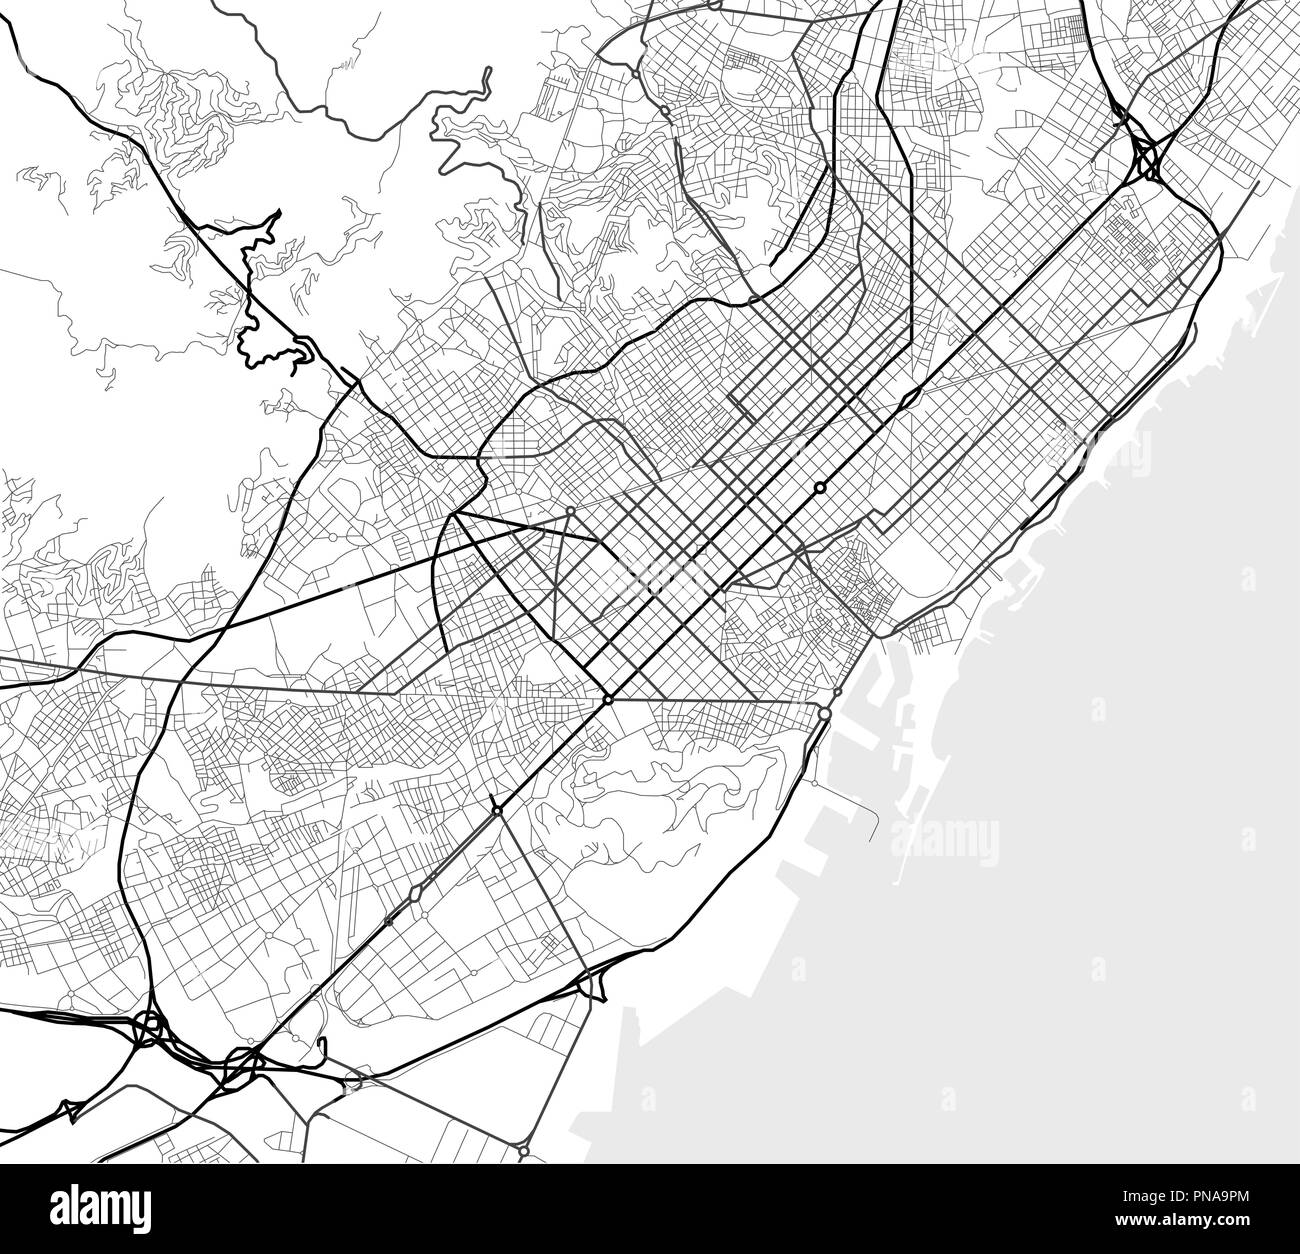 Vector city map of Barcelona in black and white Stock Vector ... on hand drawn city map, design city map, city center map, dragon city map, graphic city map, imperial city map, new york city road map, photoshop tutorial city map, art city map, hudson city map, tech city map, custom city map, mega city map, eagle city map,